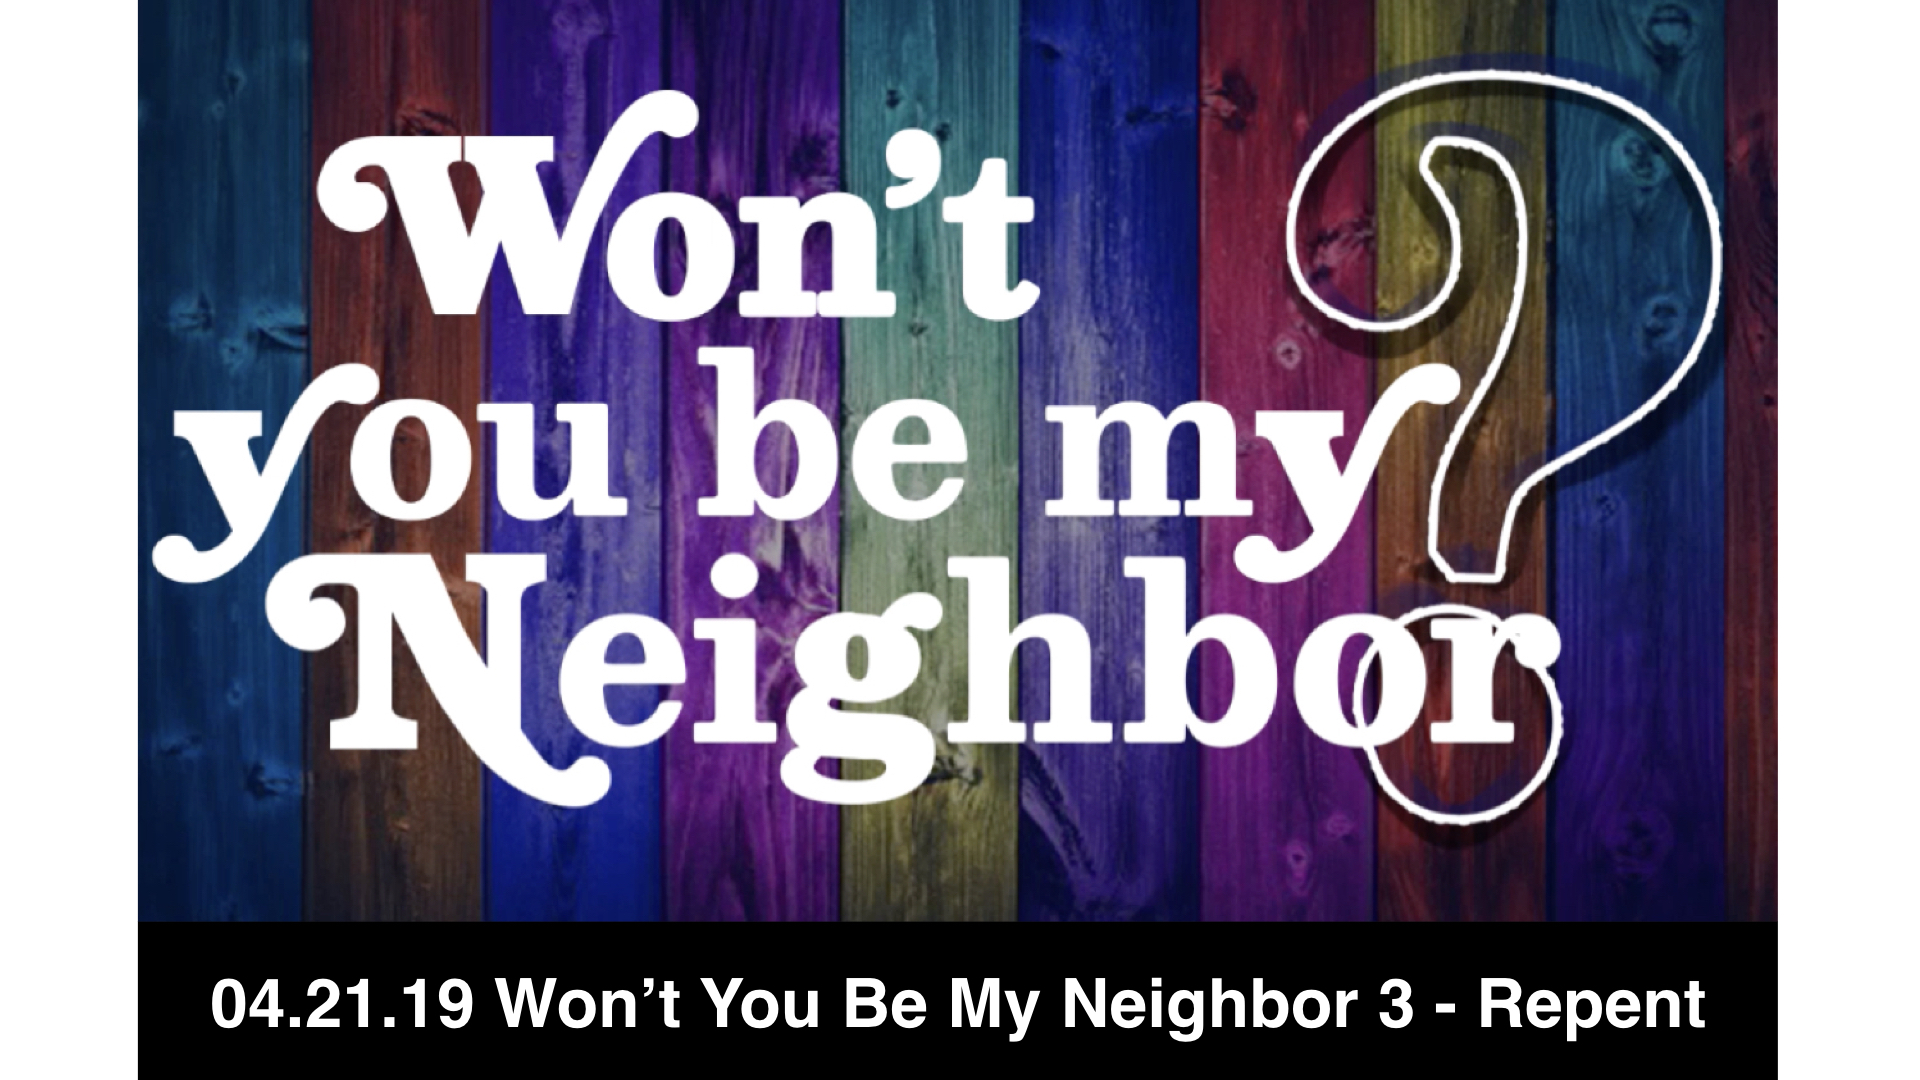 04-21-19 Won't You Be My Neighbor 3 - Repent